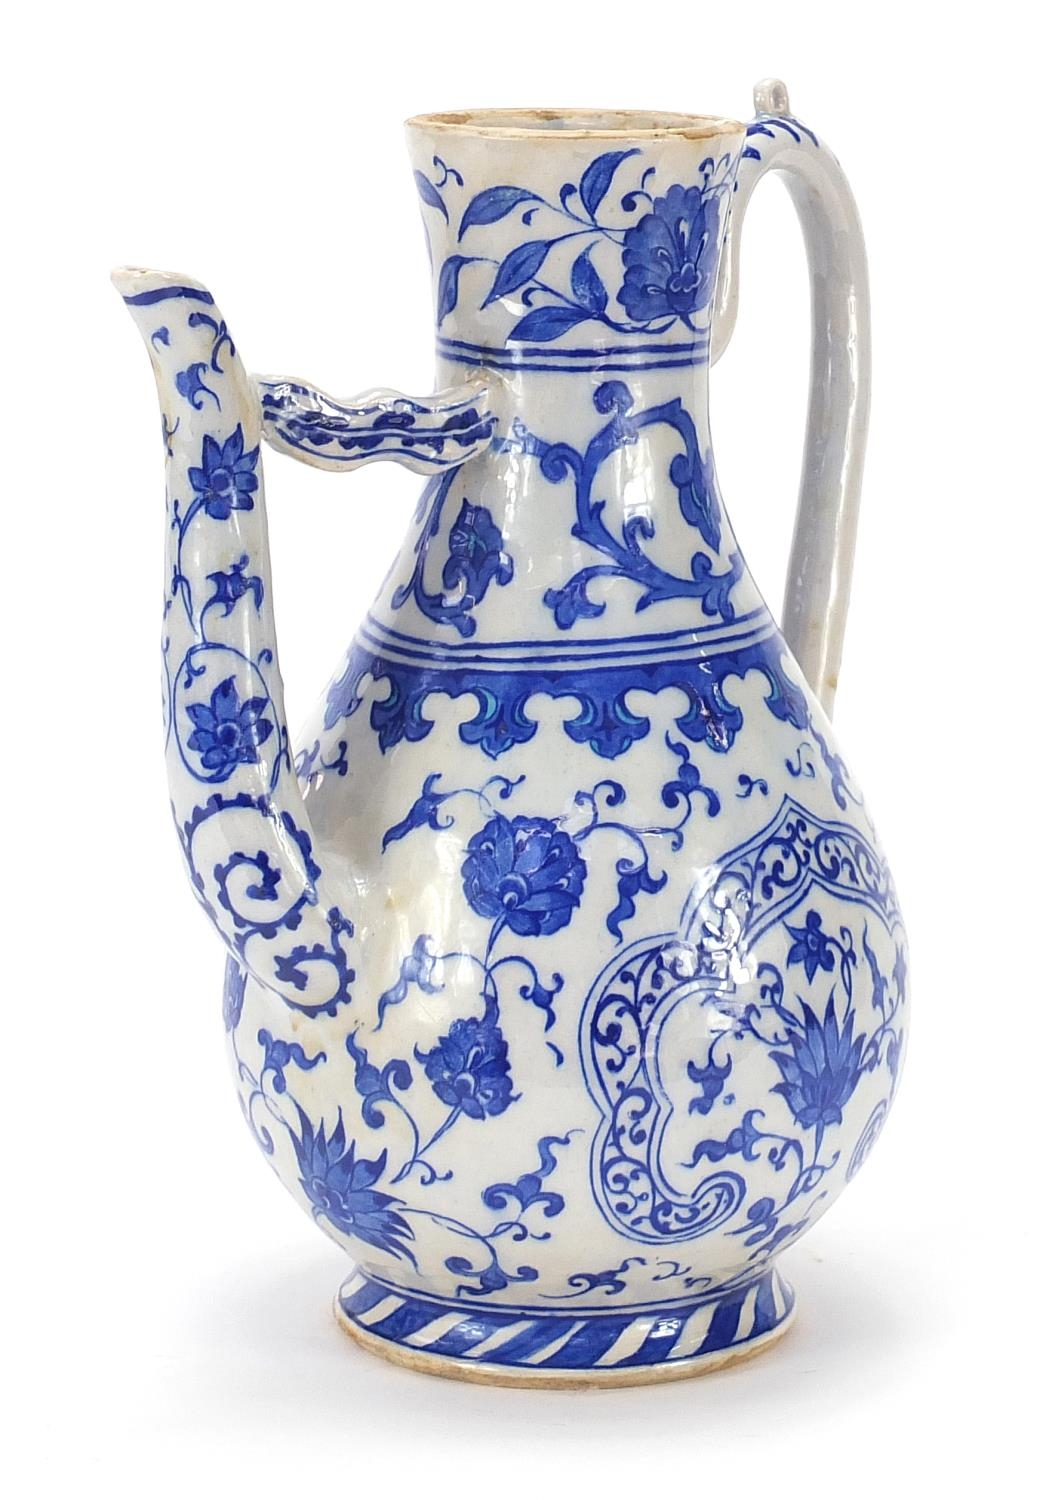 Turkish Iznik pottery water carafe decorated with flowers, 29.5cm high : For Further Condition